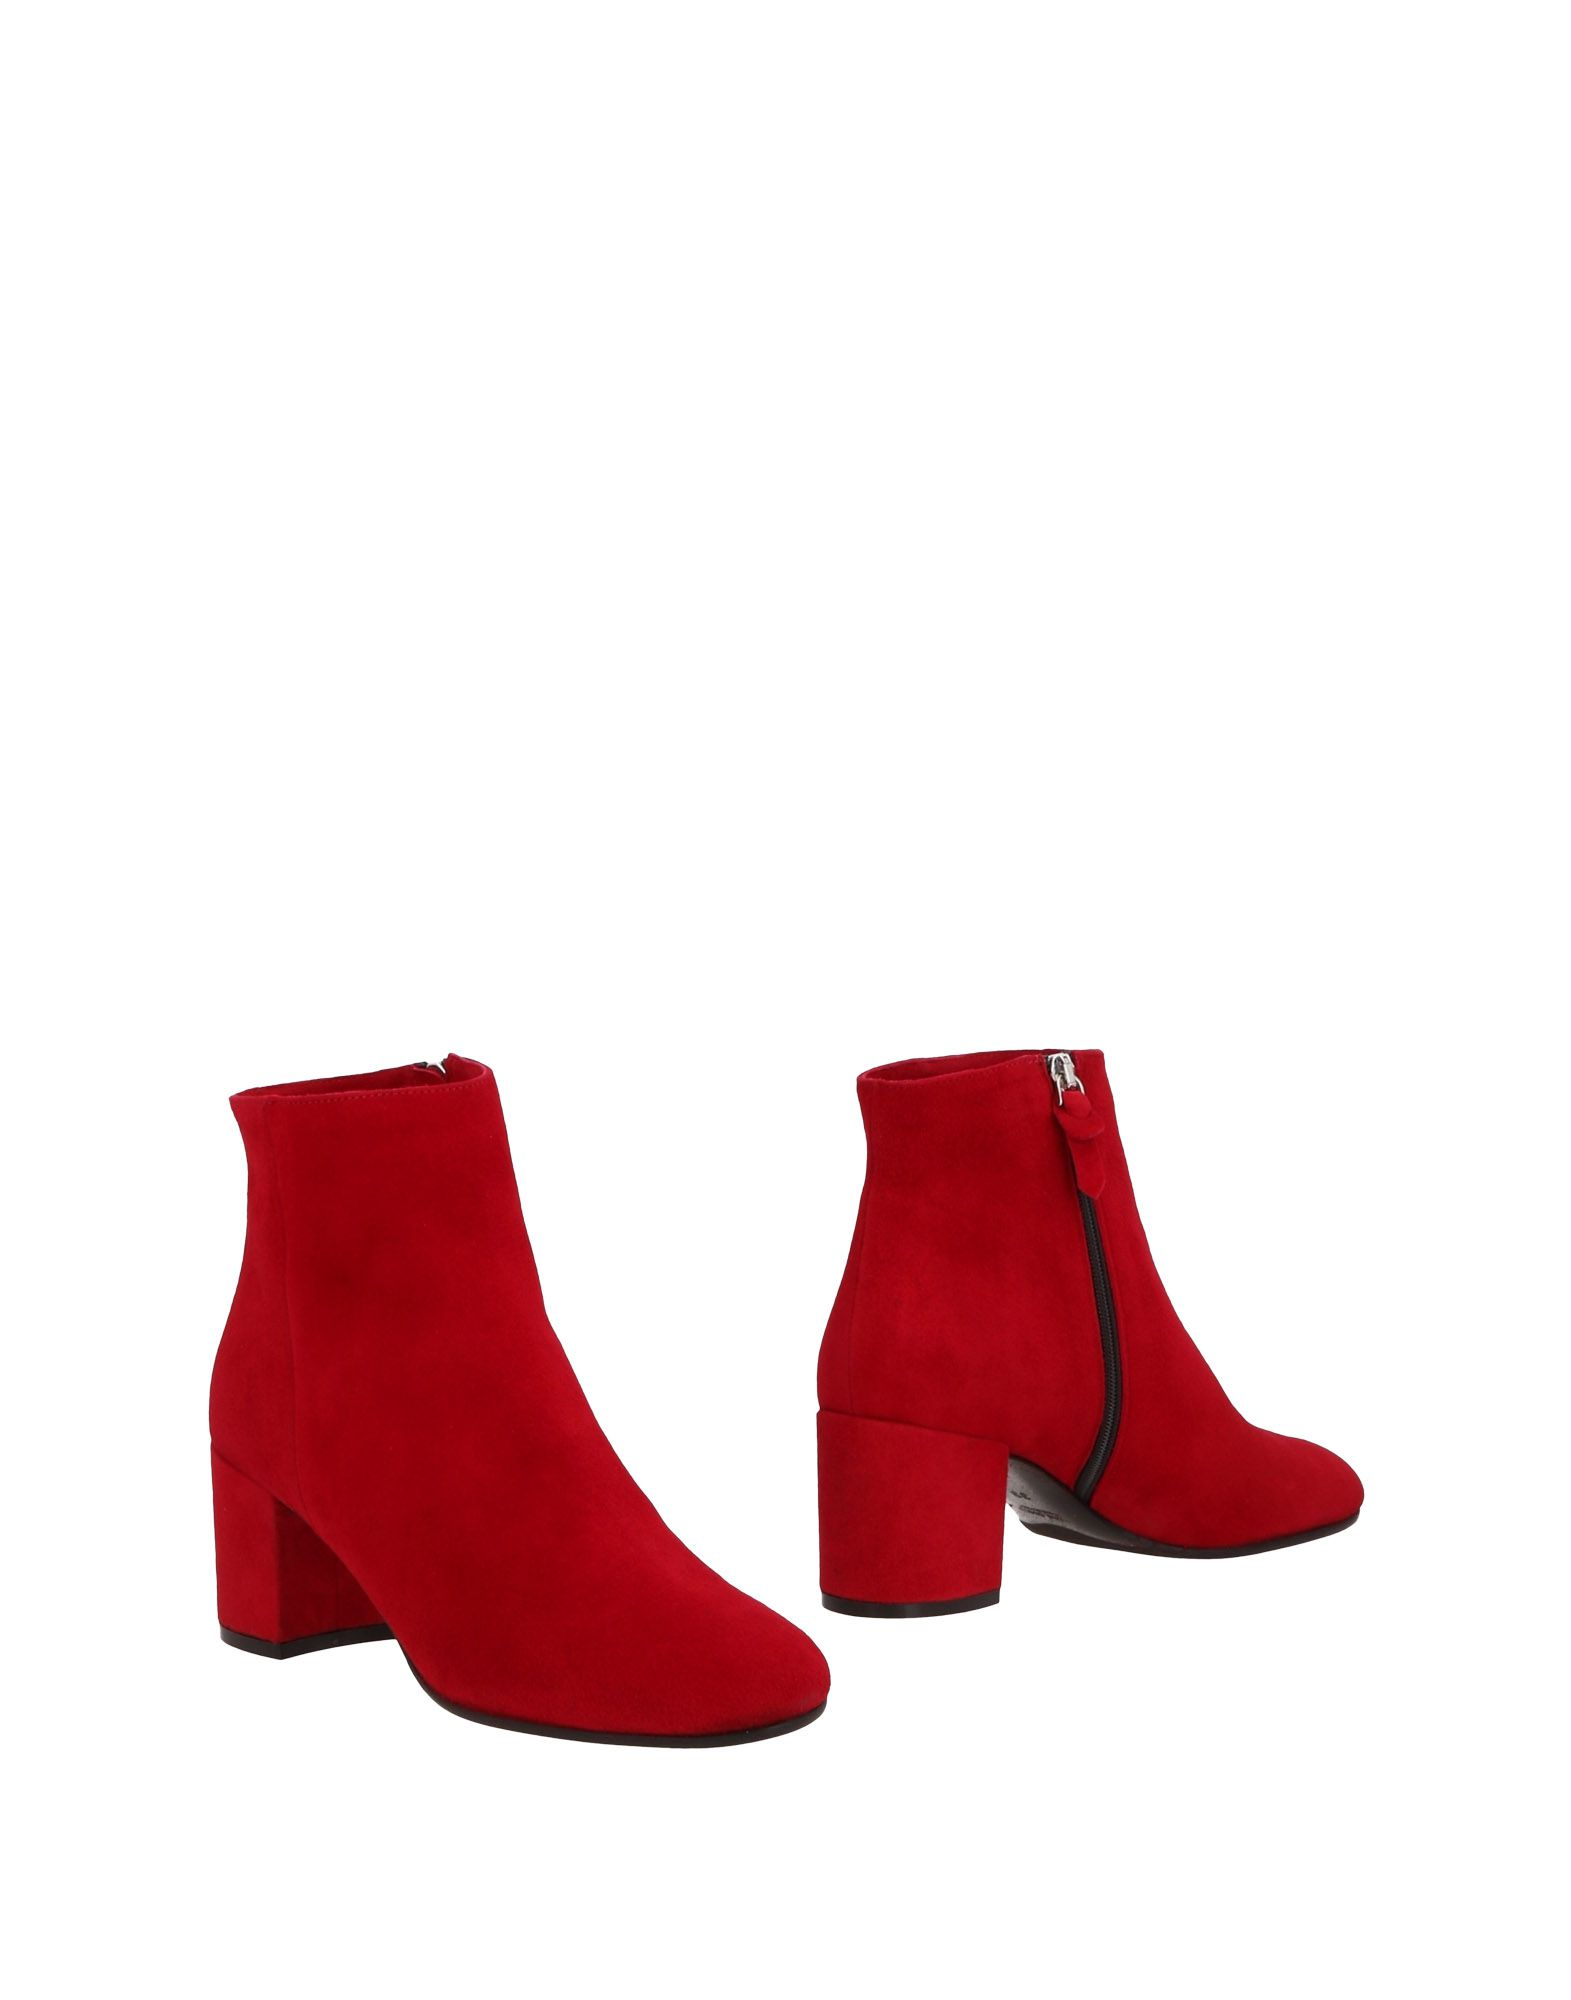 Prezioso Ankle Boot Boots - Women Prezioso Ankle Boots Boot online on  Australia - 11481784OX a9b96d